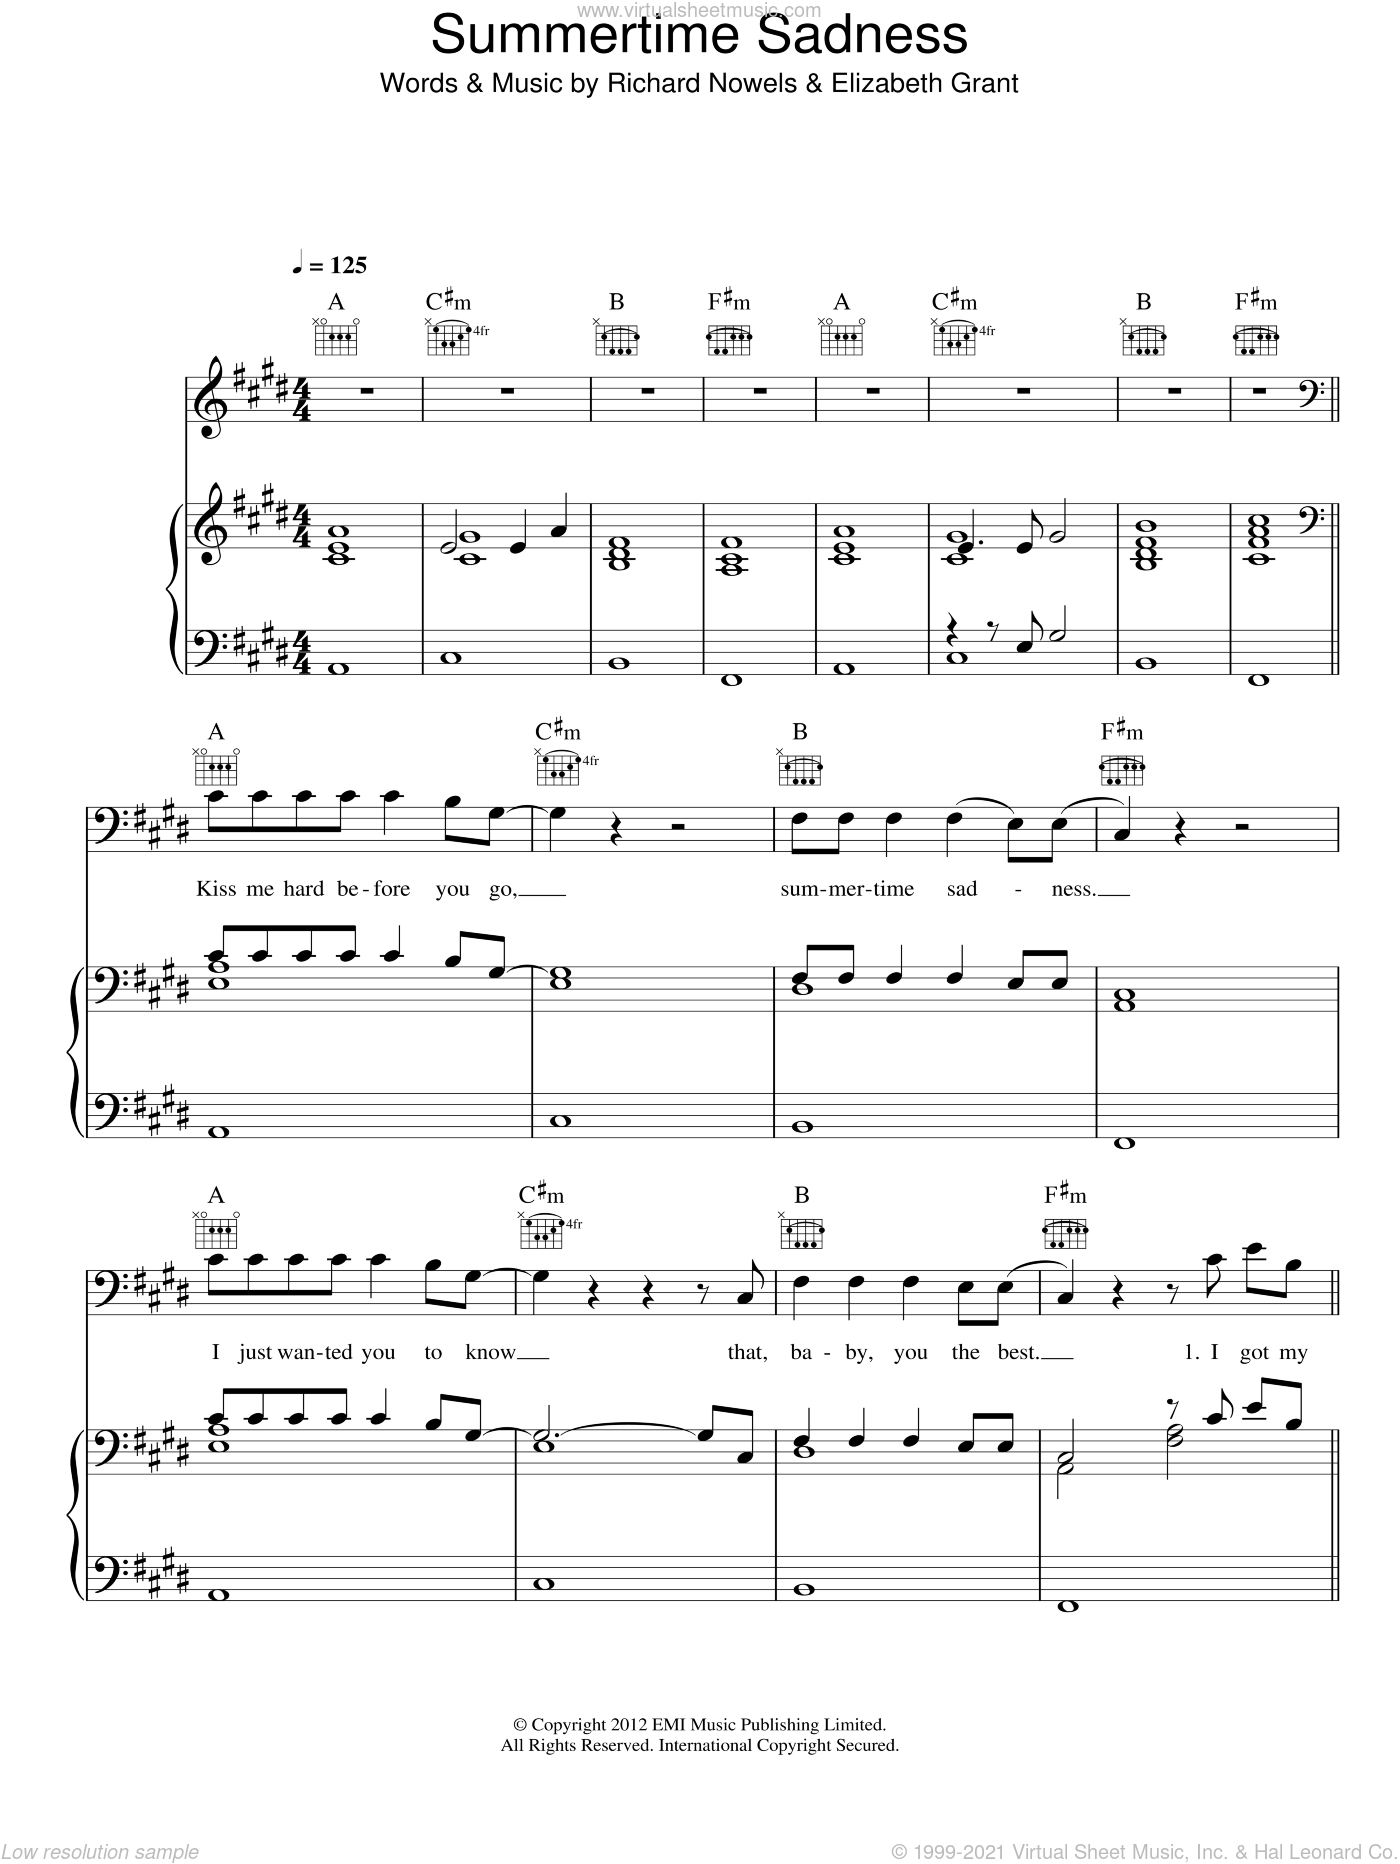 Summertime Sadness sheet music for voice, piano or guitar by Rick Nowels